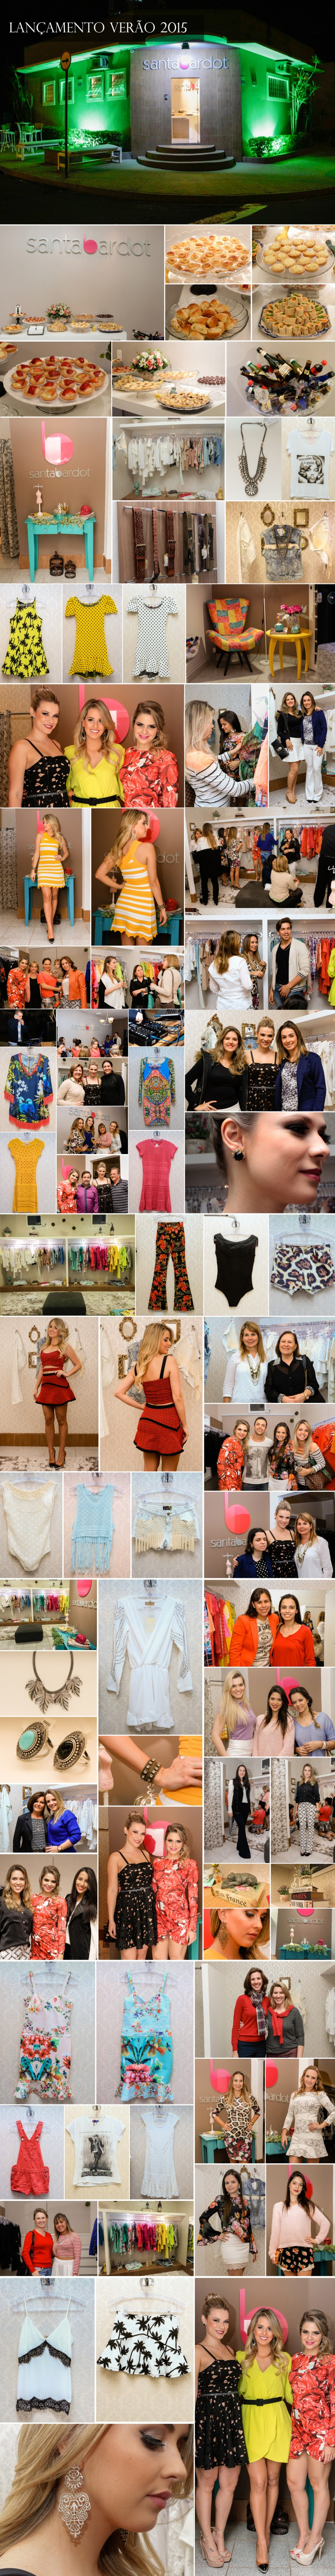 eventos-blog-marinacasemiro-santabardot-ribeiraopreto-fashion